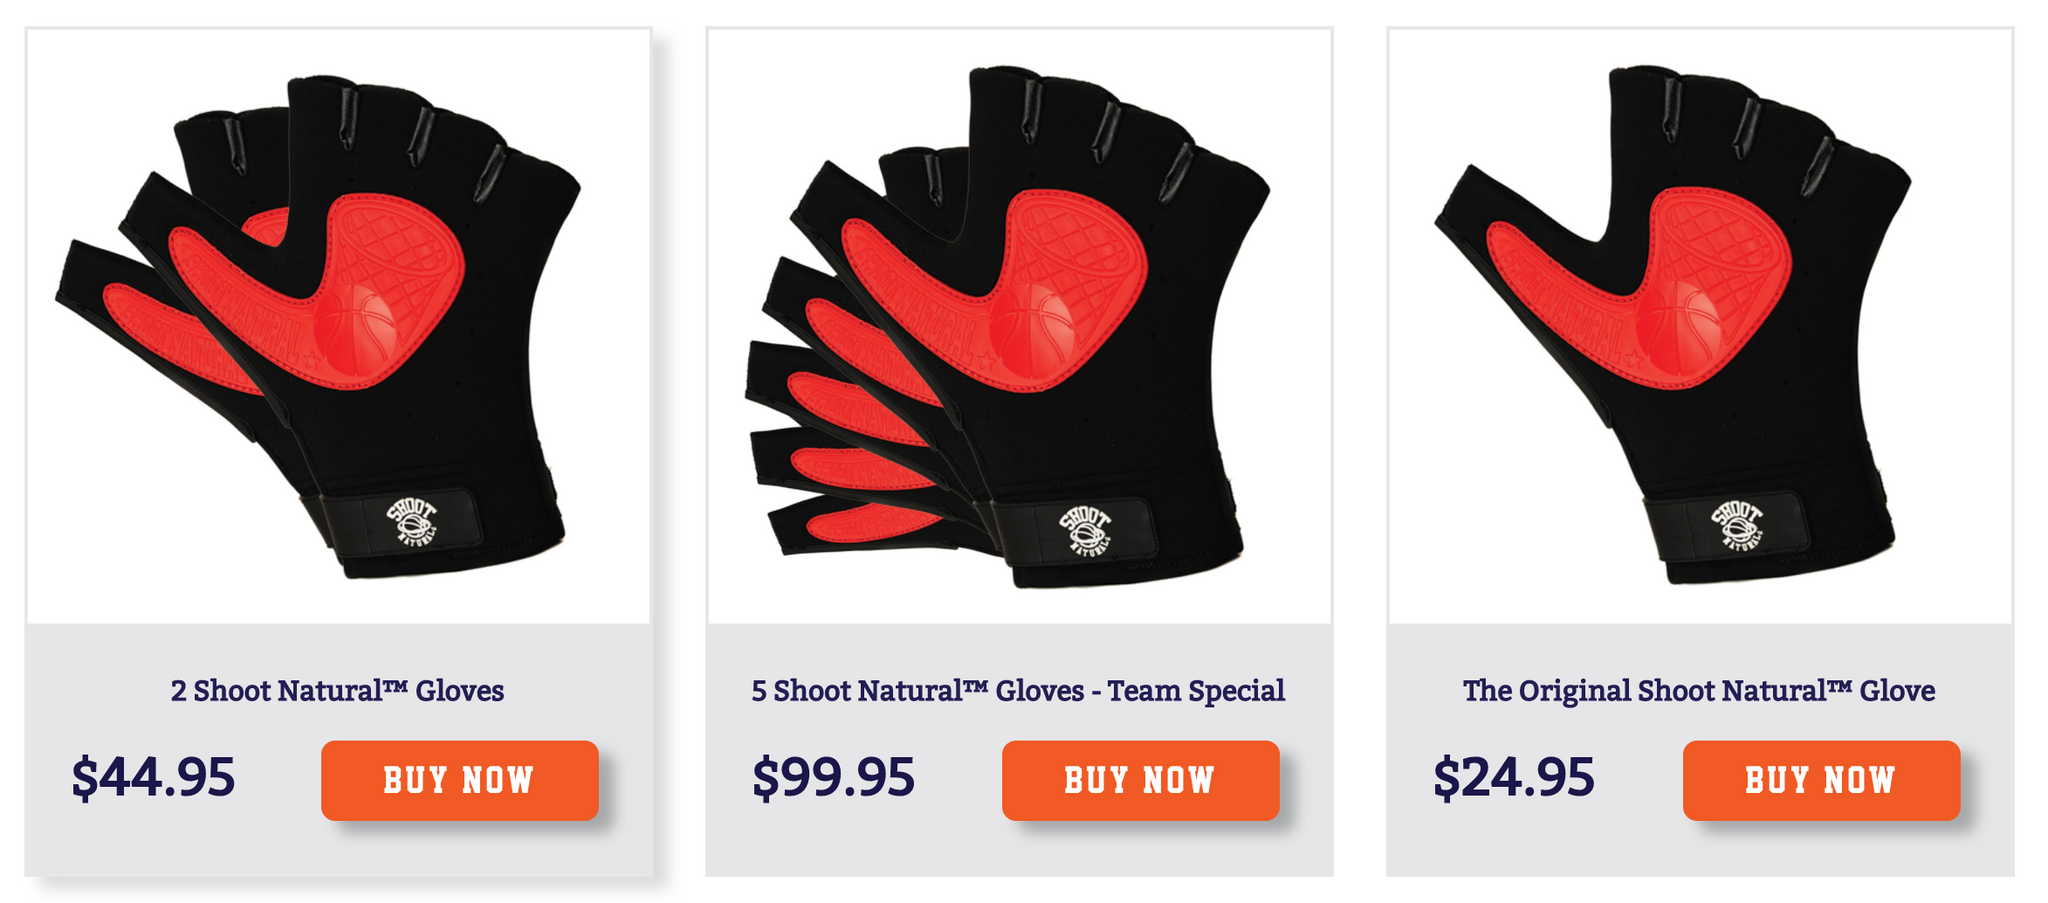 Shoot Natural™ Glove | Fix Inconsistent shot | Basketball shooting aid